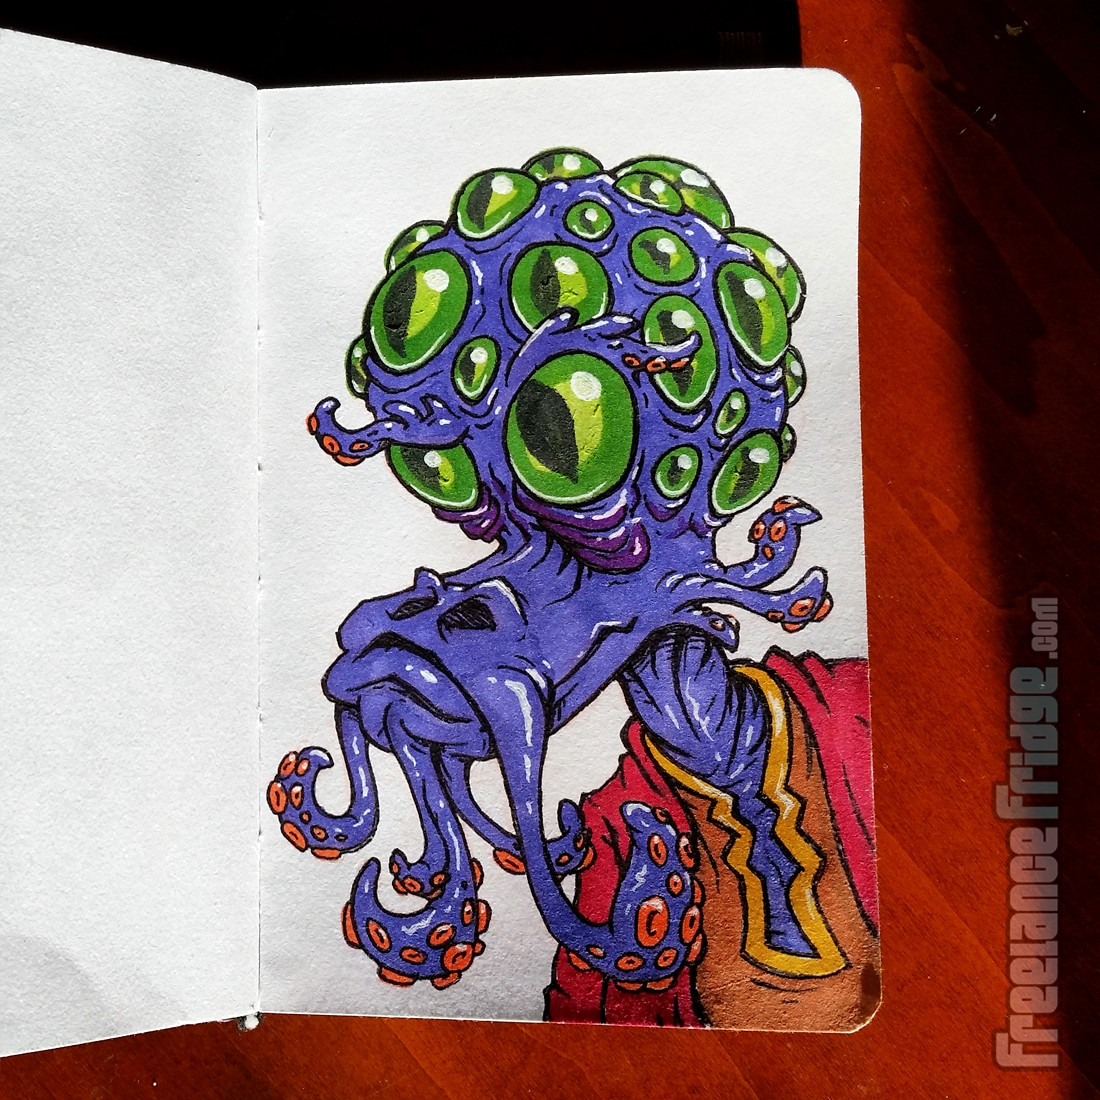 Drawn tentacle cartoon Tentacle Alien Mustache and With